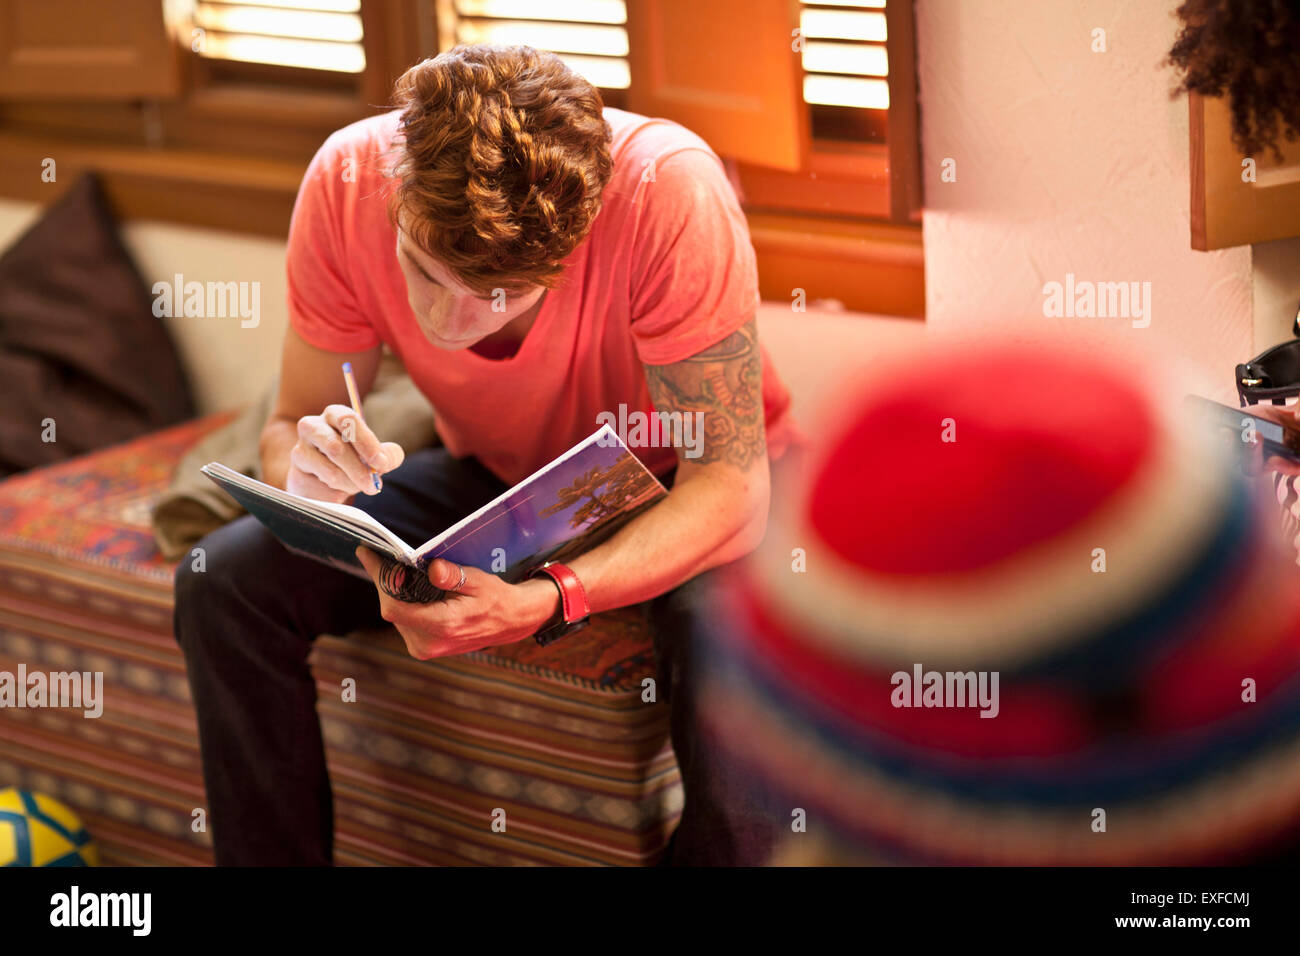 Student studying in living room Photo Stock